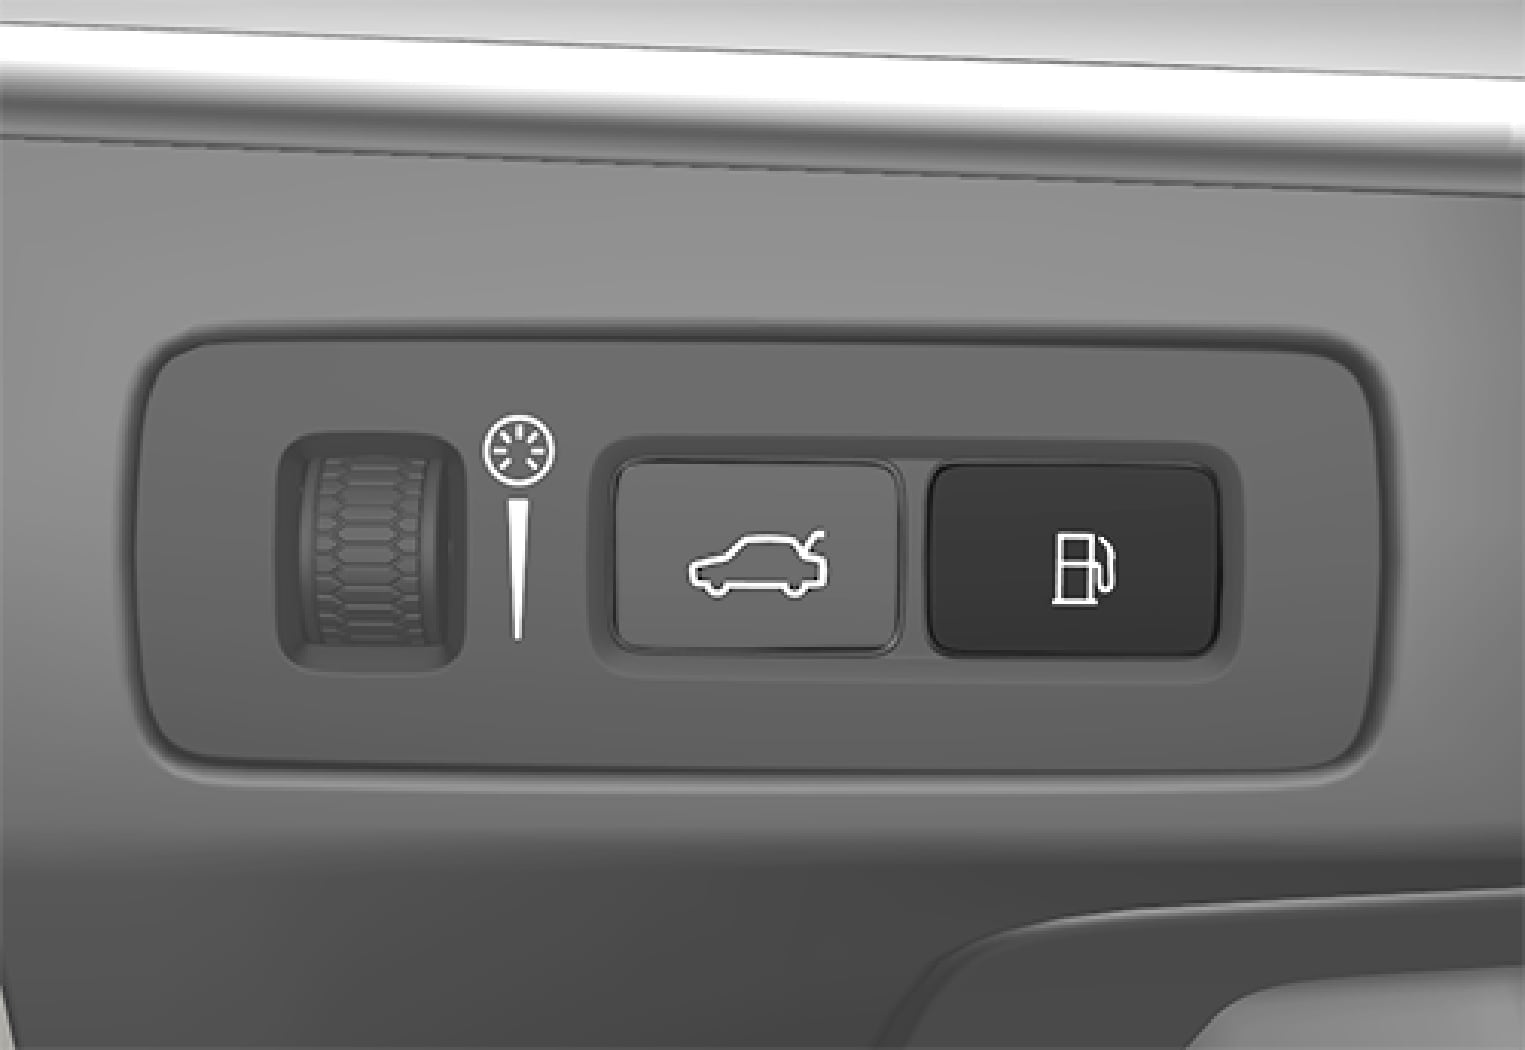 P5-1519-XC90 HYBRID Fuel filler flap button